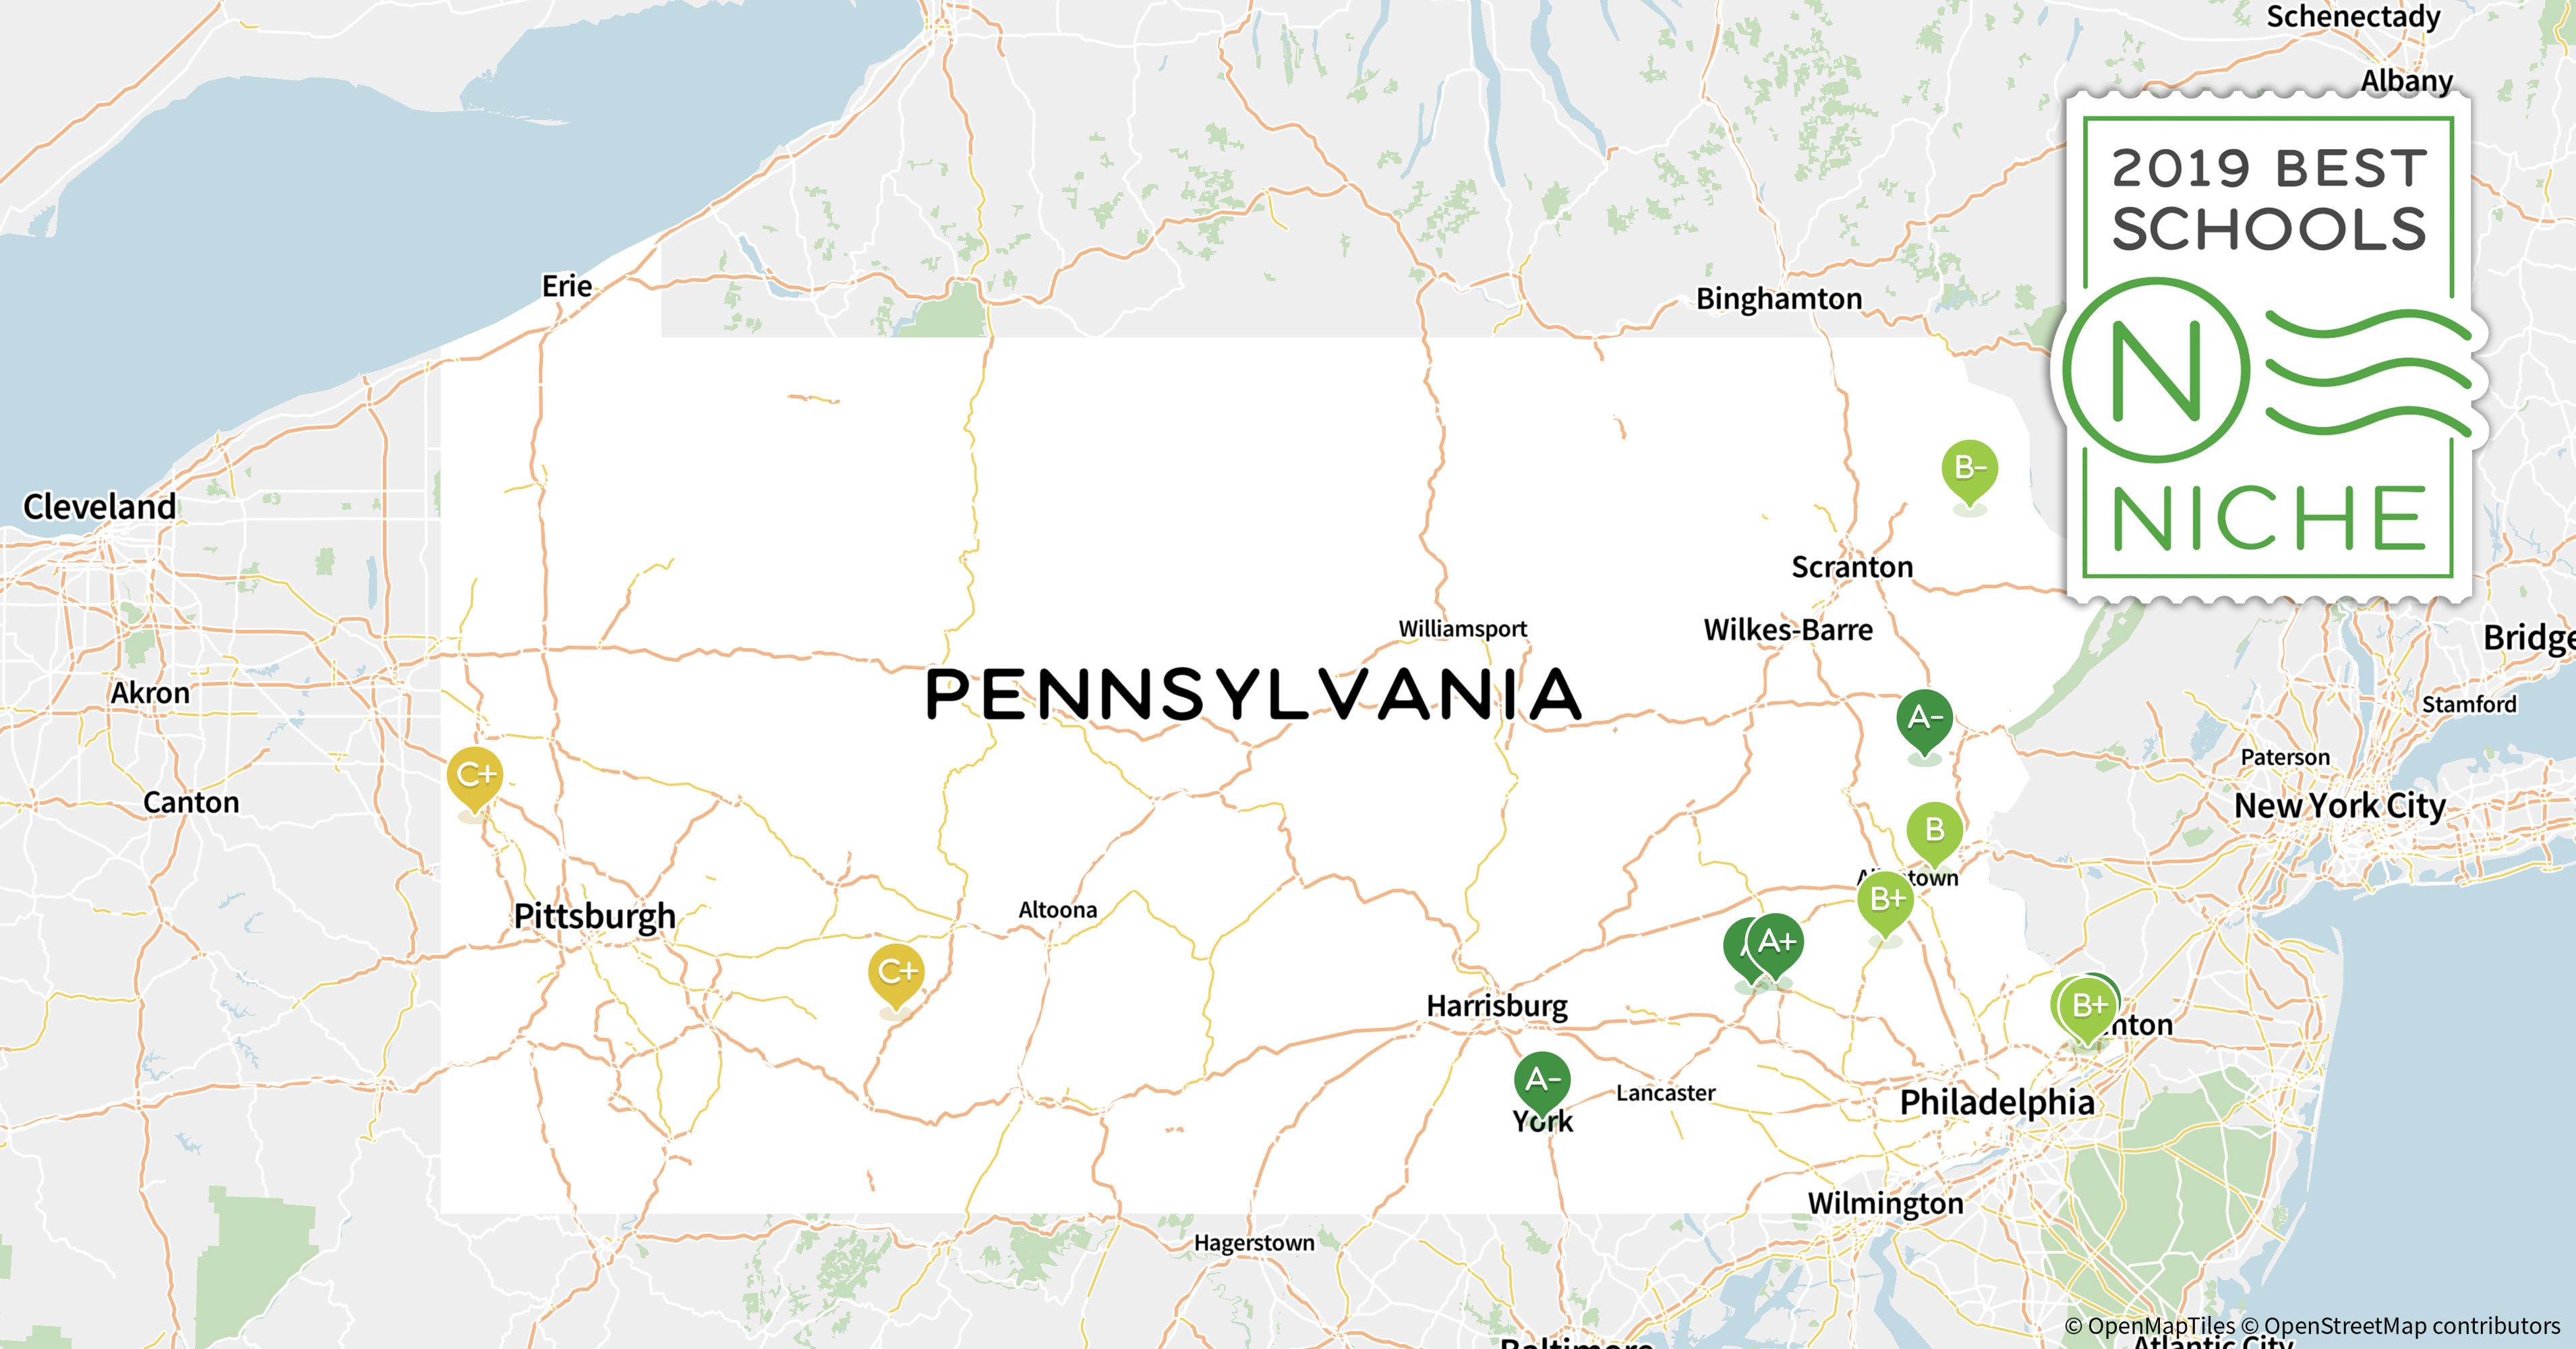 2019 Best School Districts in Pennsylvania - Niche